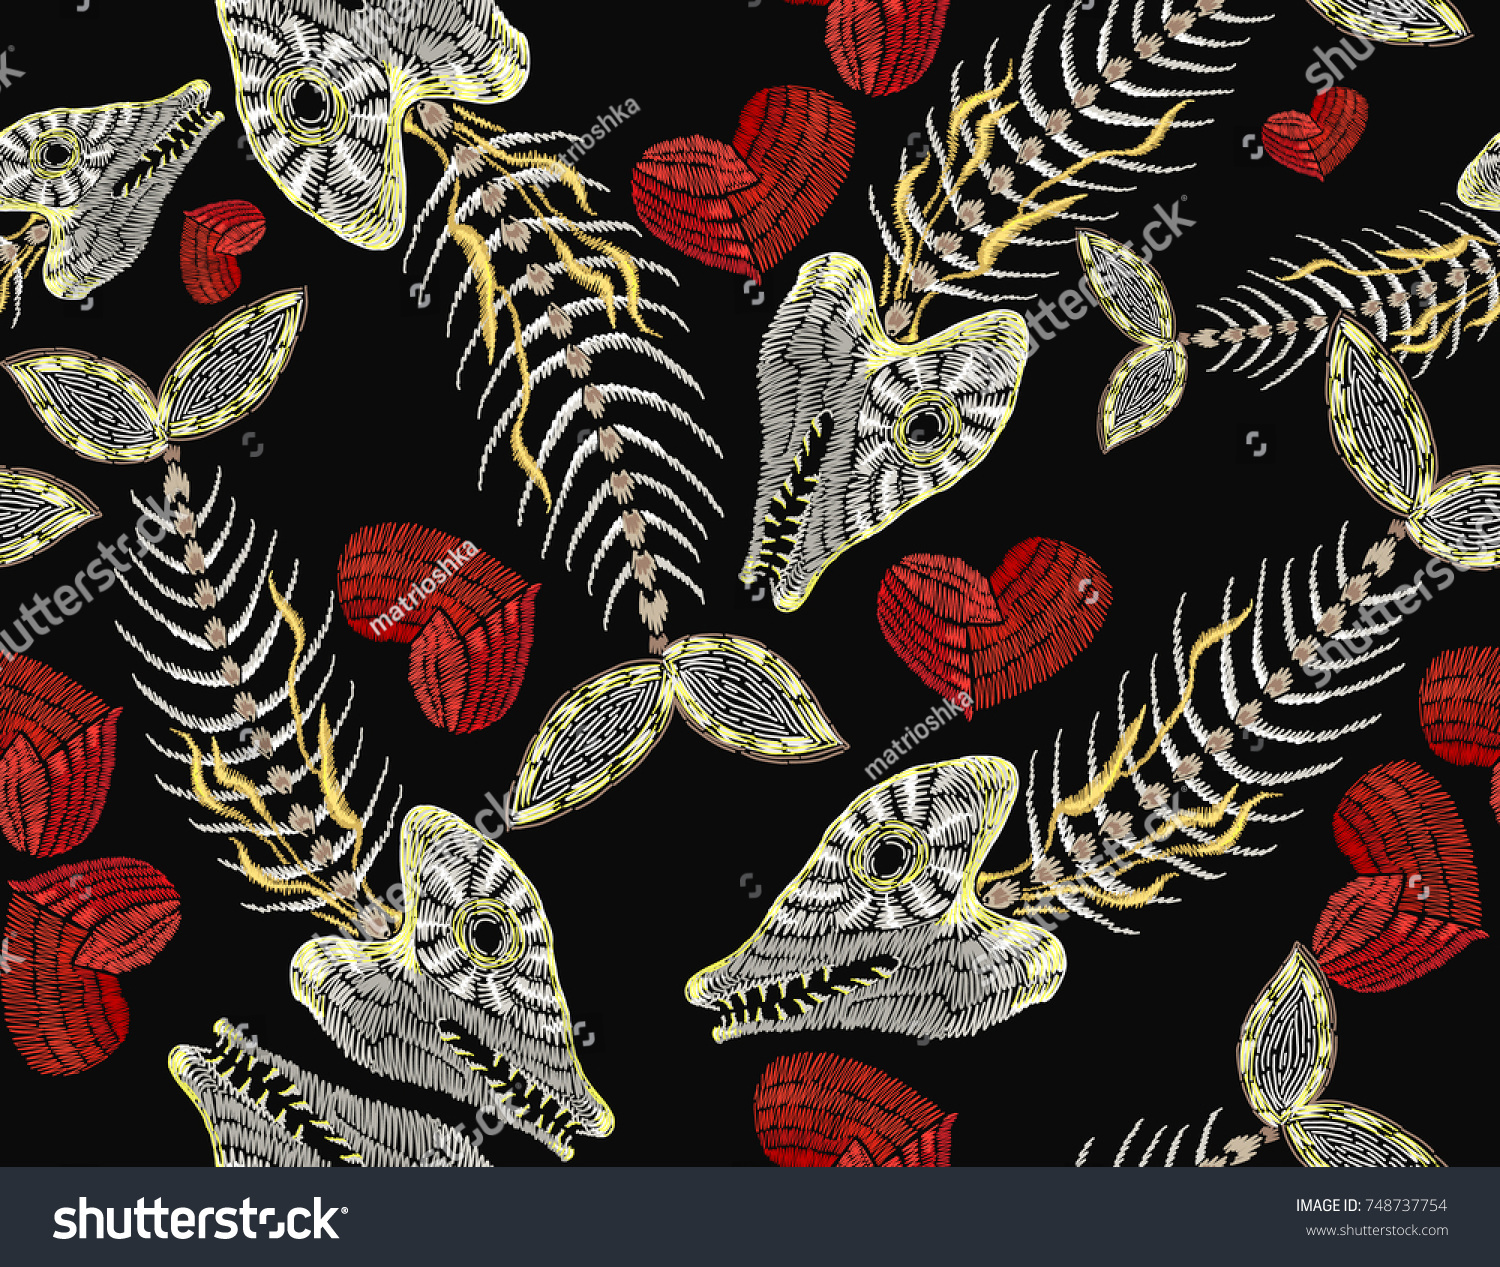 Embroidery Fish Bone Heart Seamless Pattern Stock Vector HD (Royalty ...